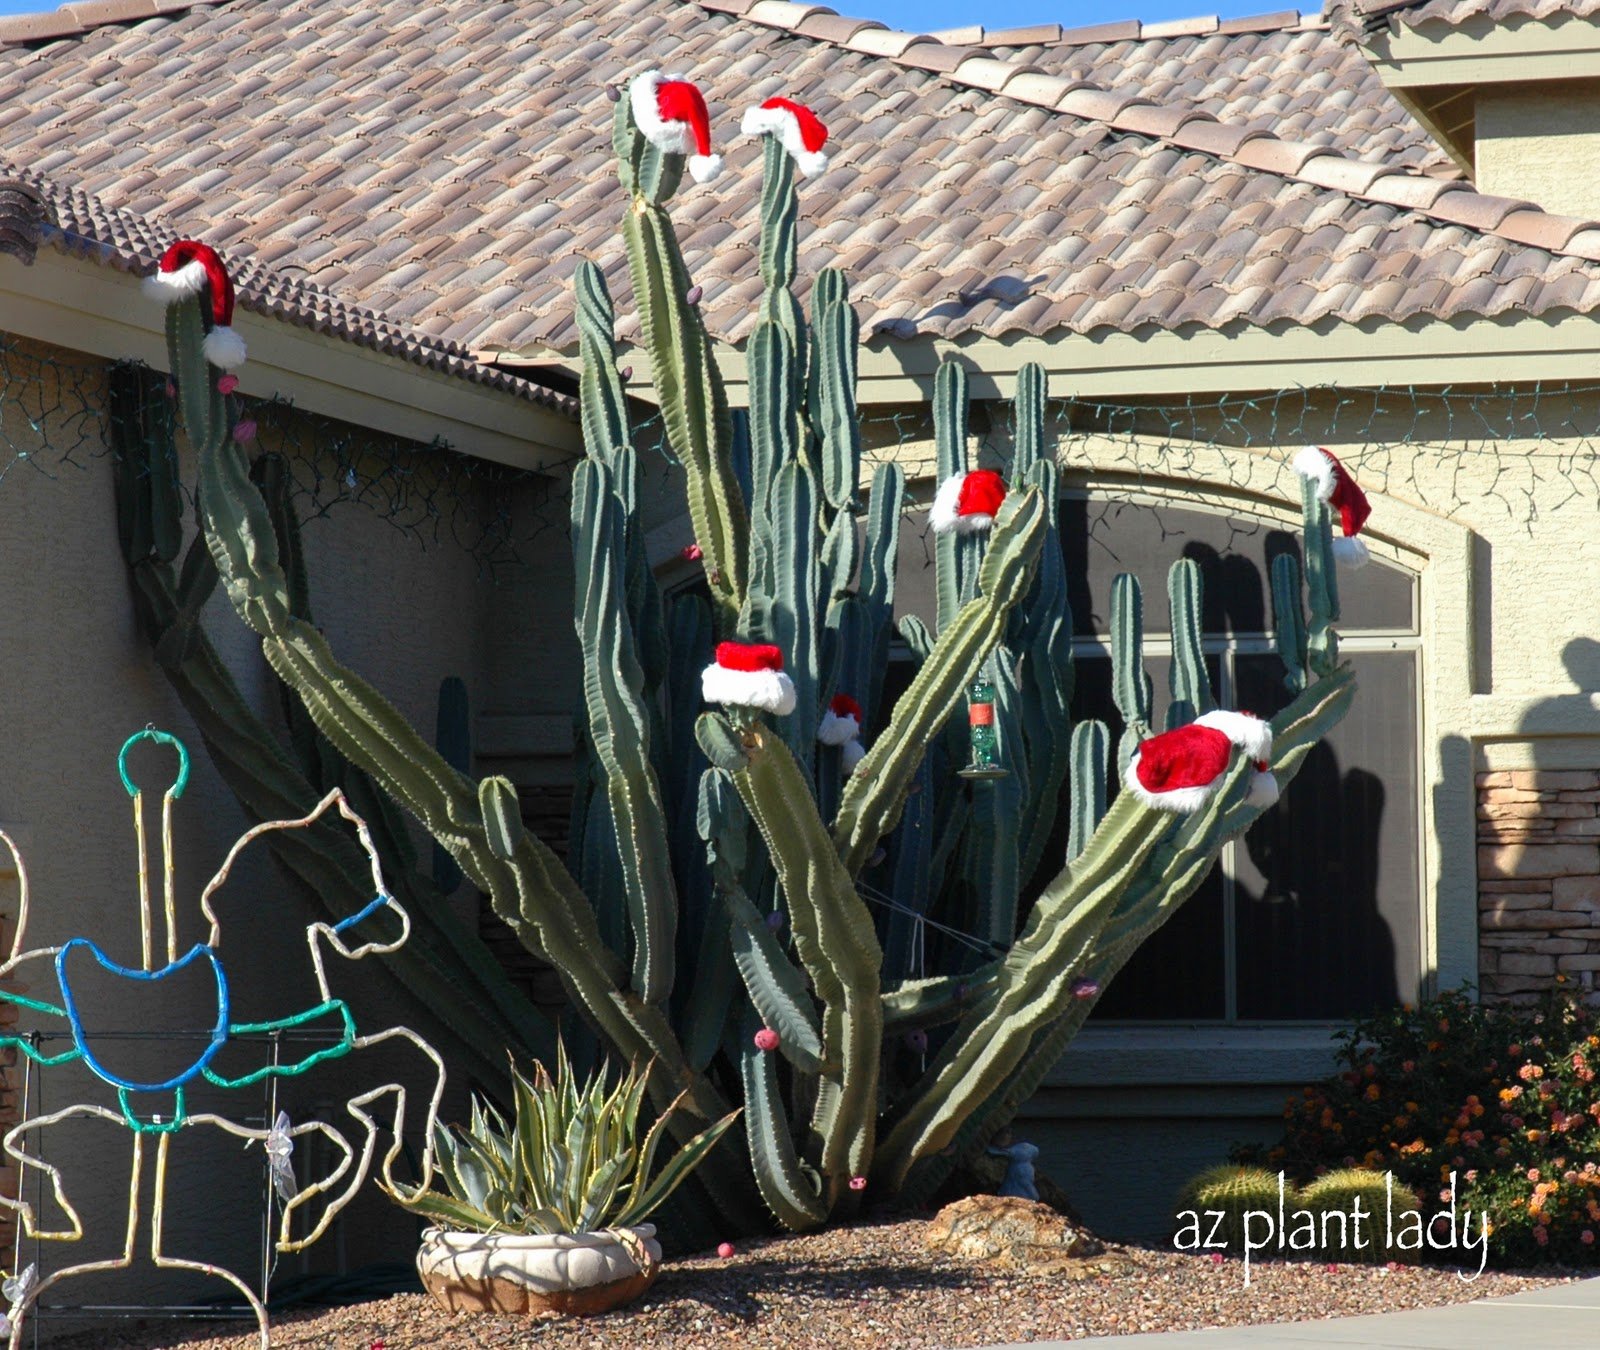 agave also play a part in holiday decorations